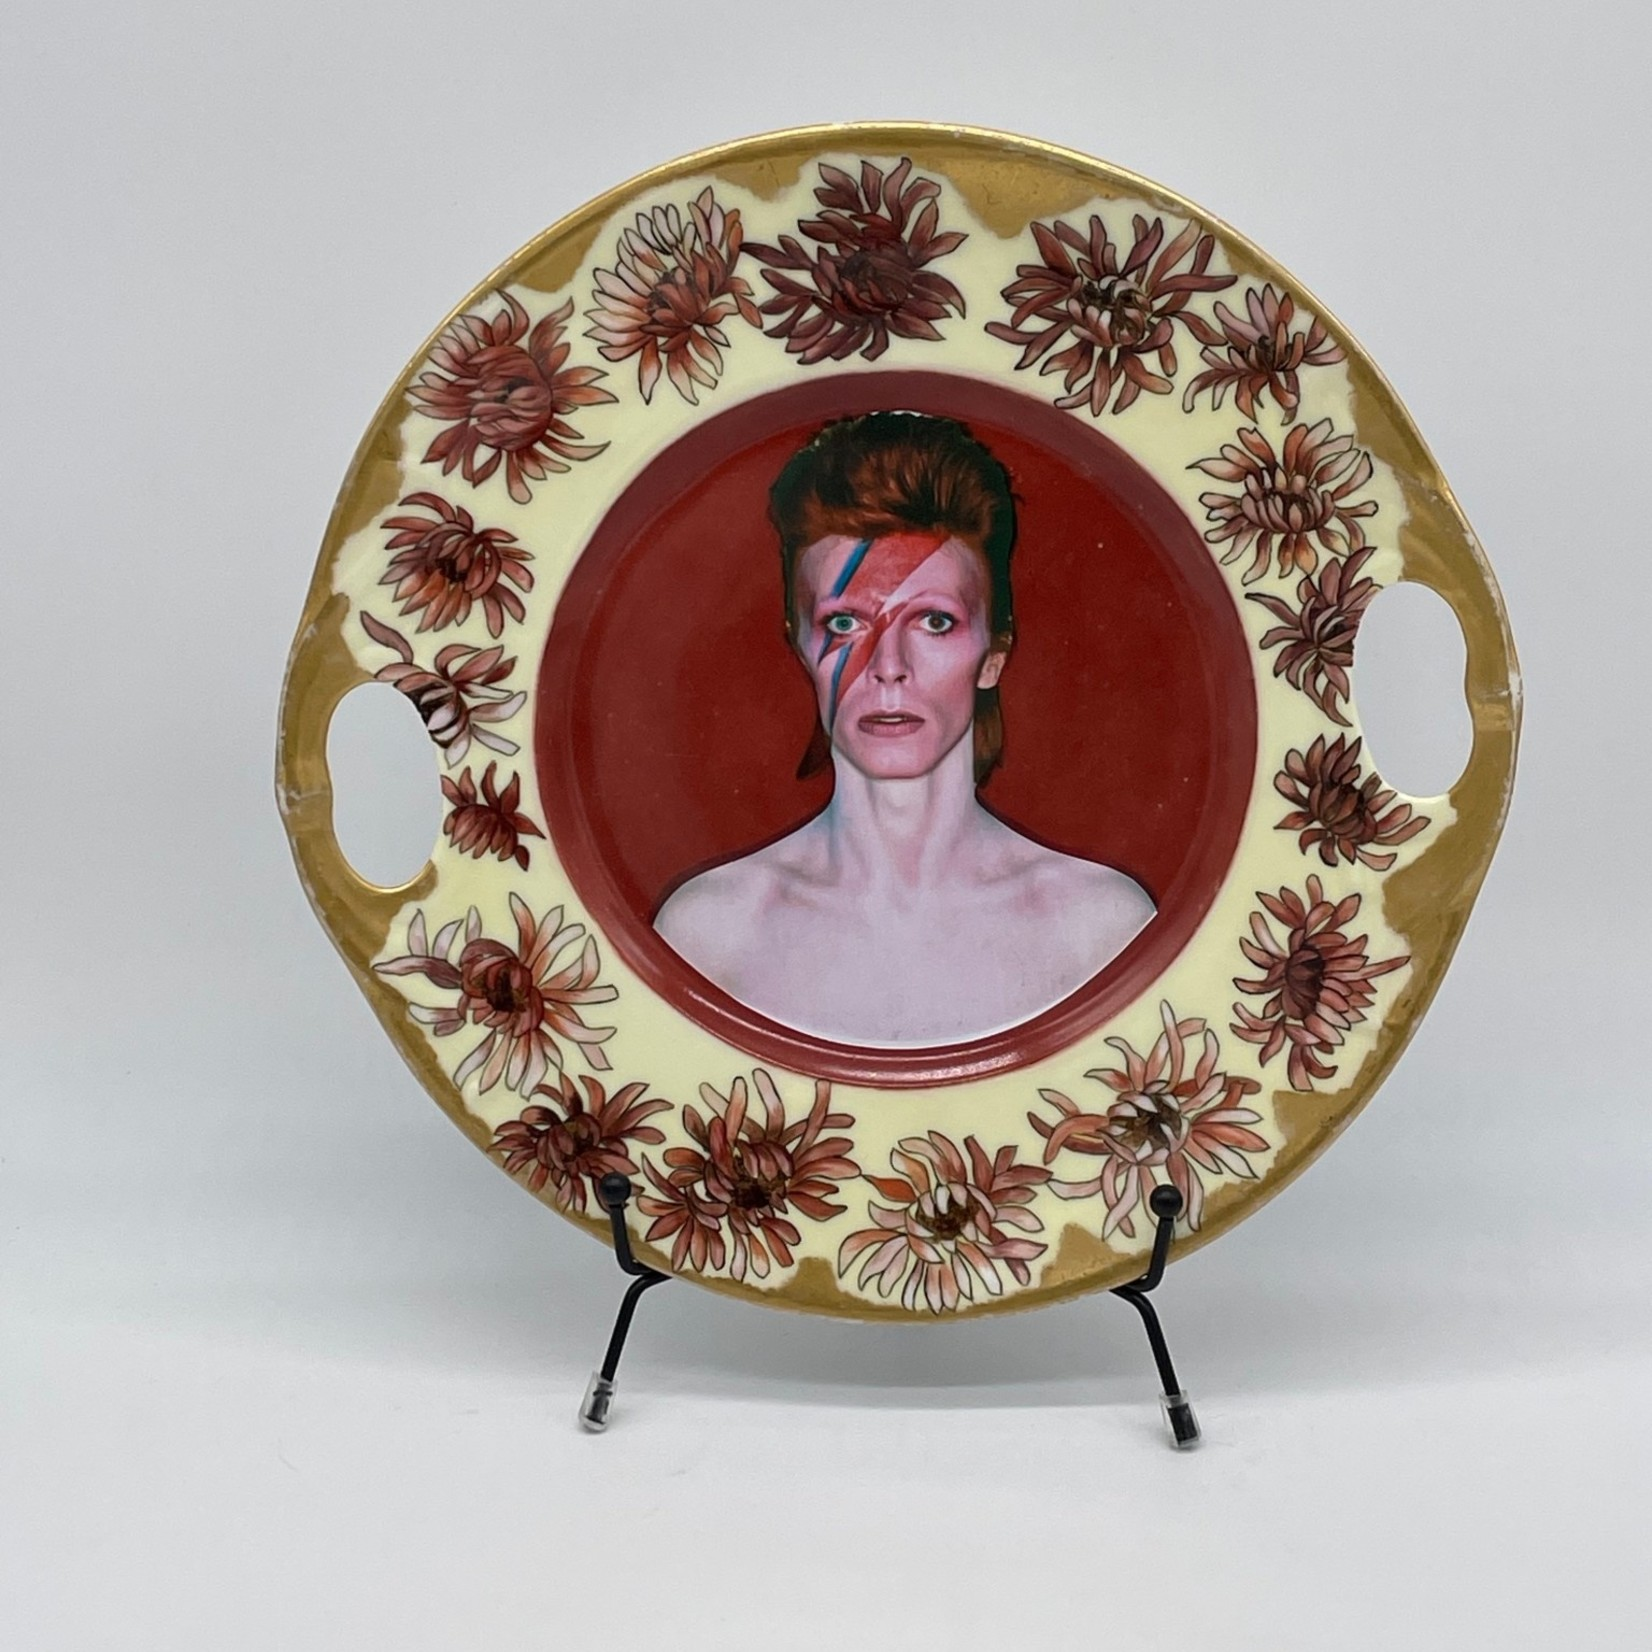 Camp Mercantile Camp Mercantile Bowie Plate Special Edition